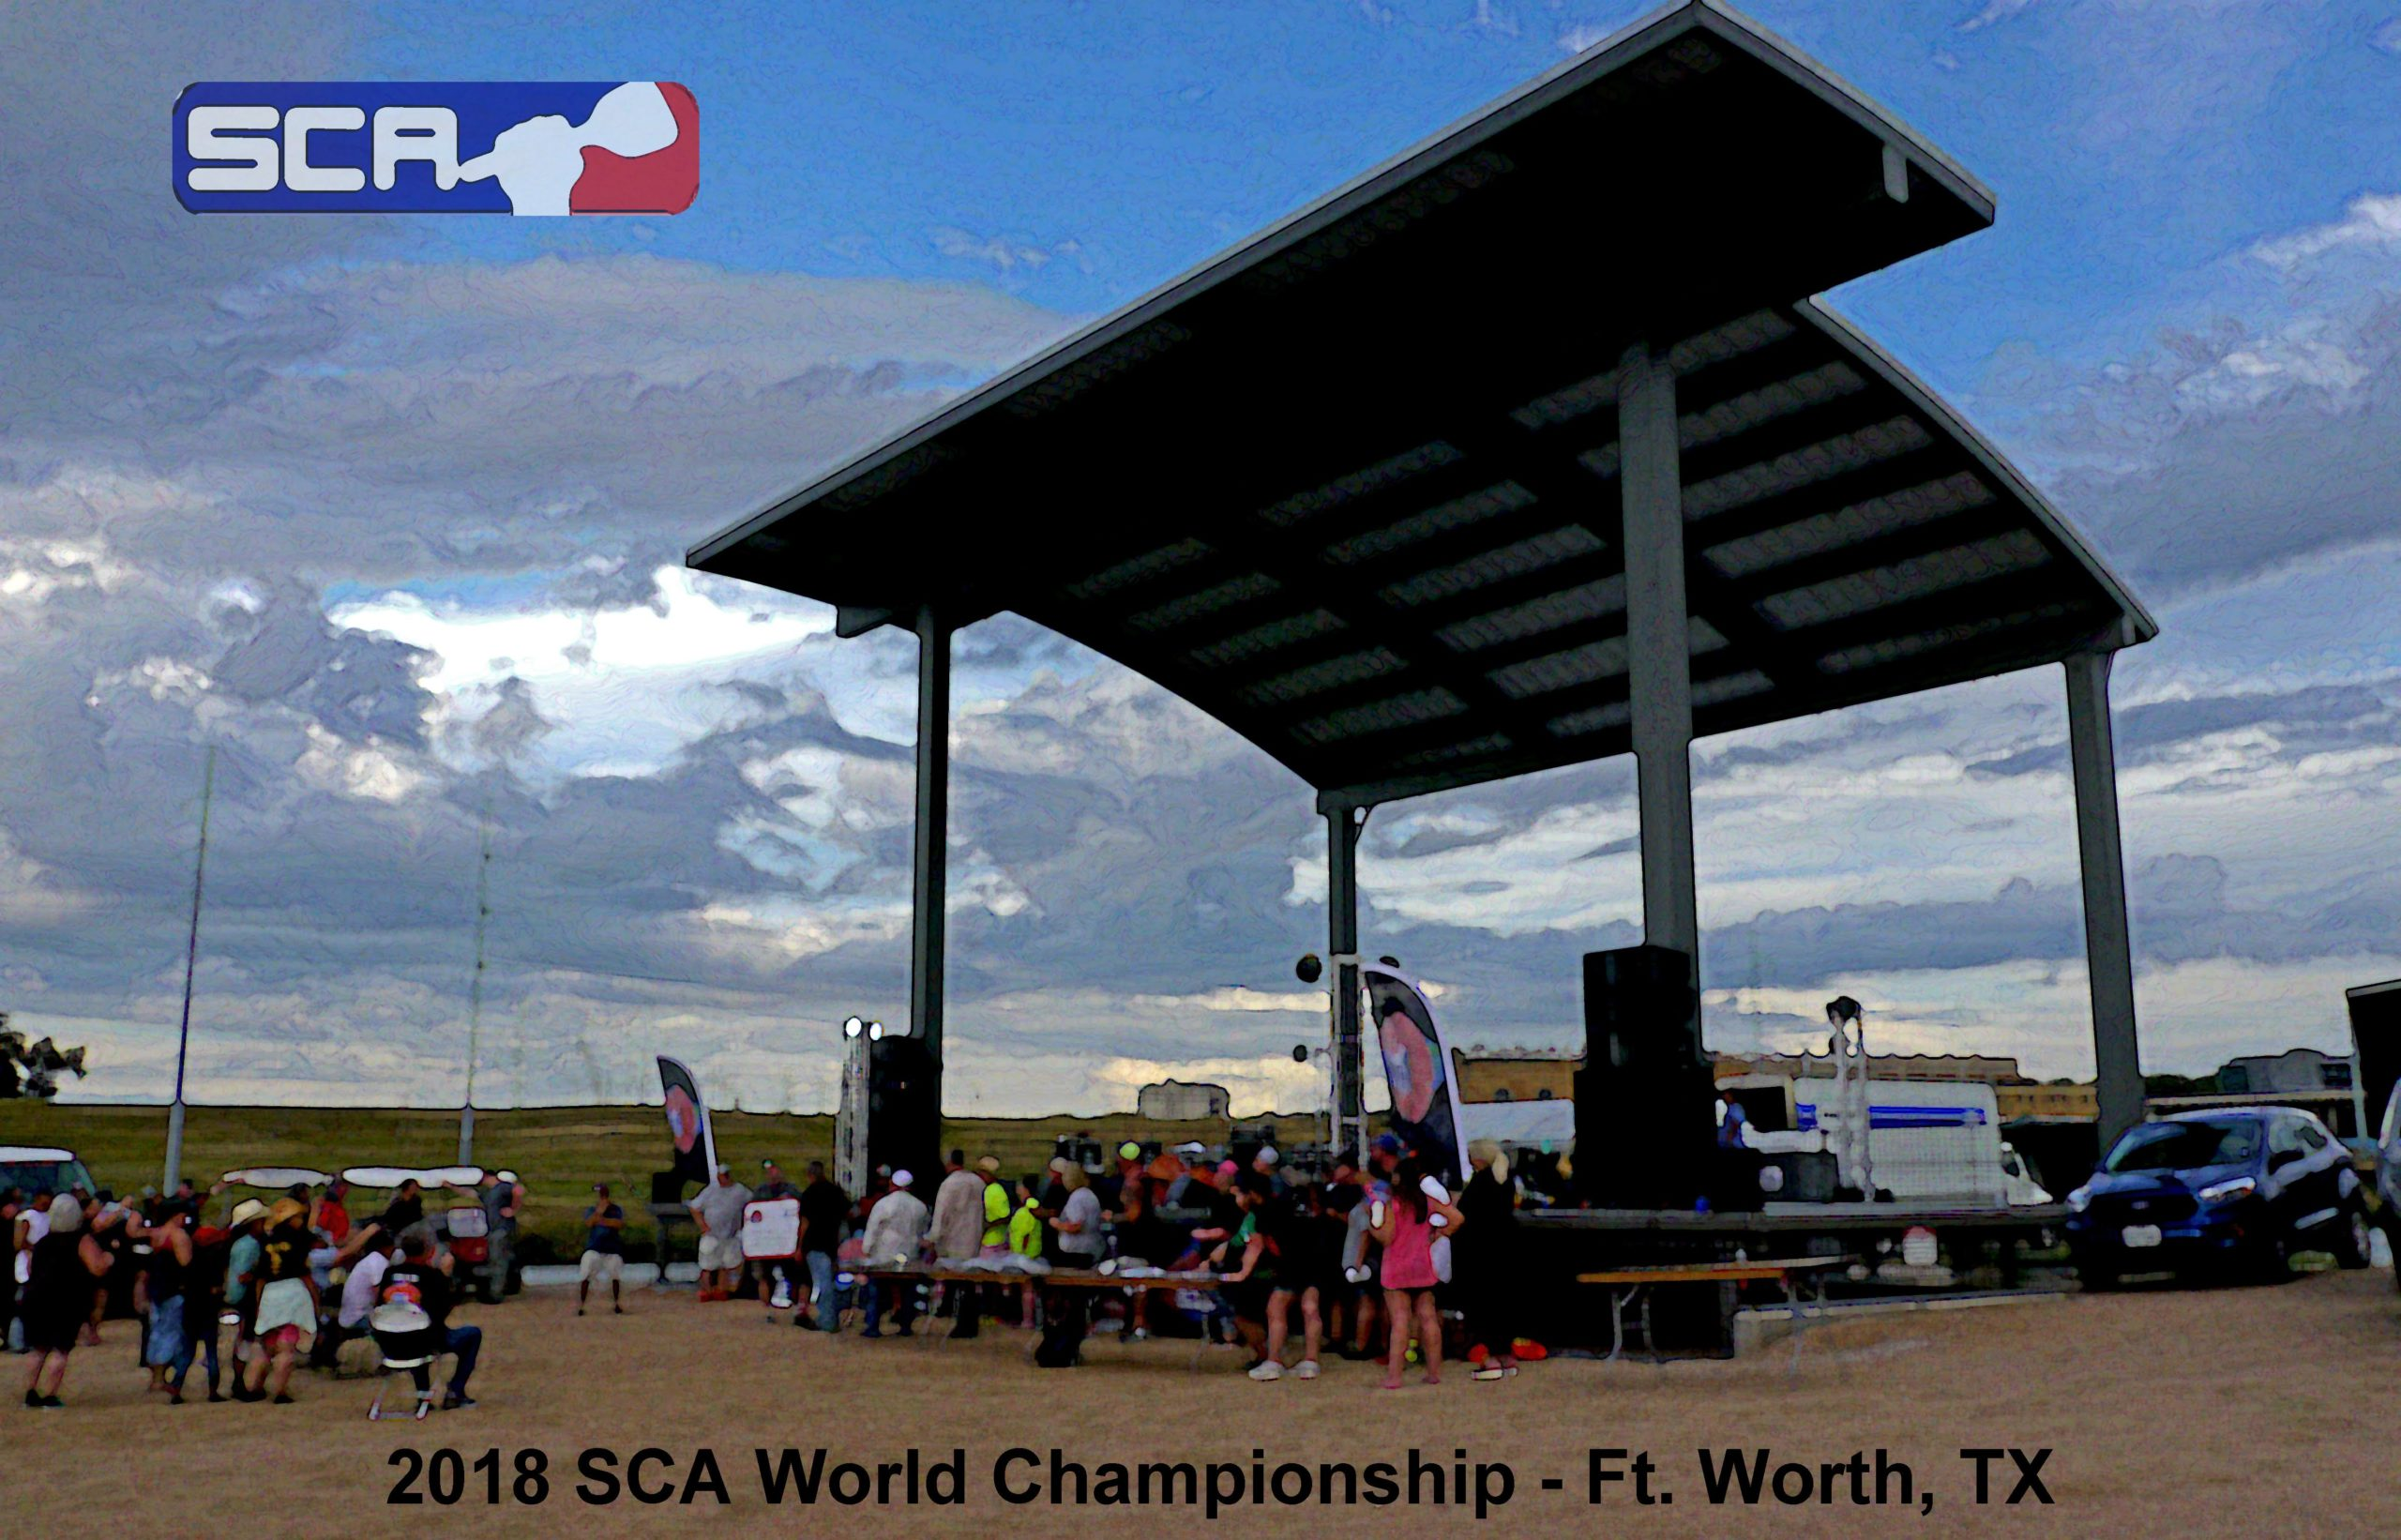 Tribute to the Saffire Competitors in the 2018 SCA World Championship